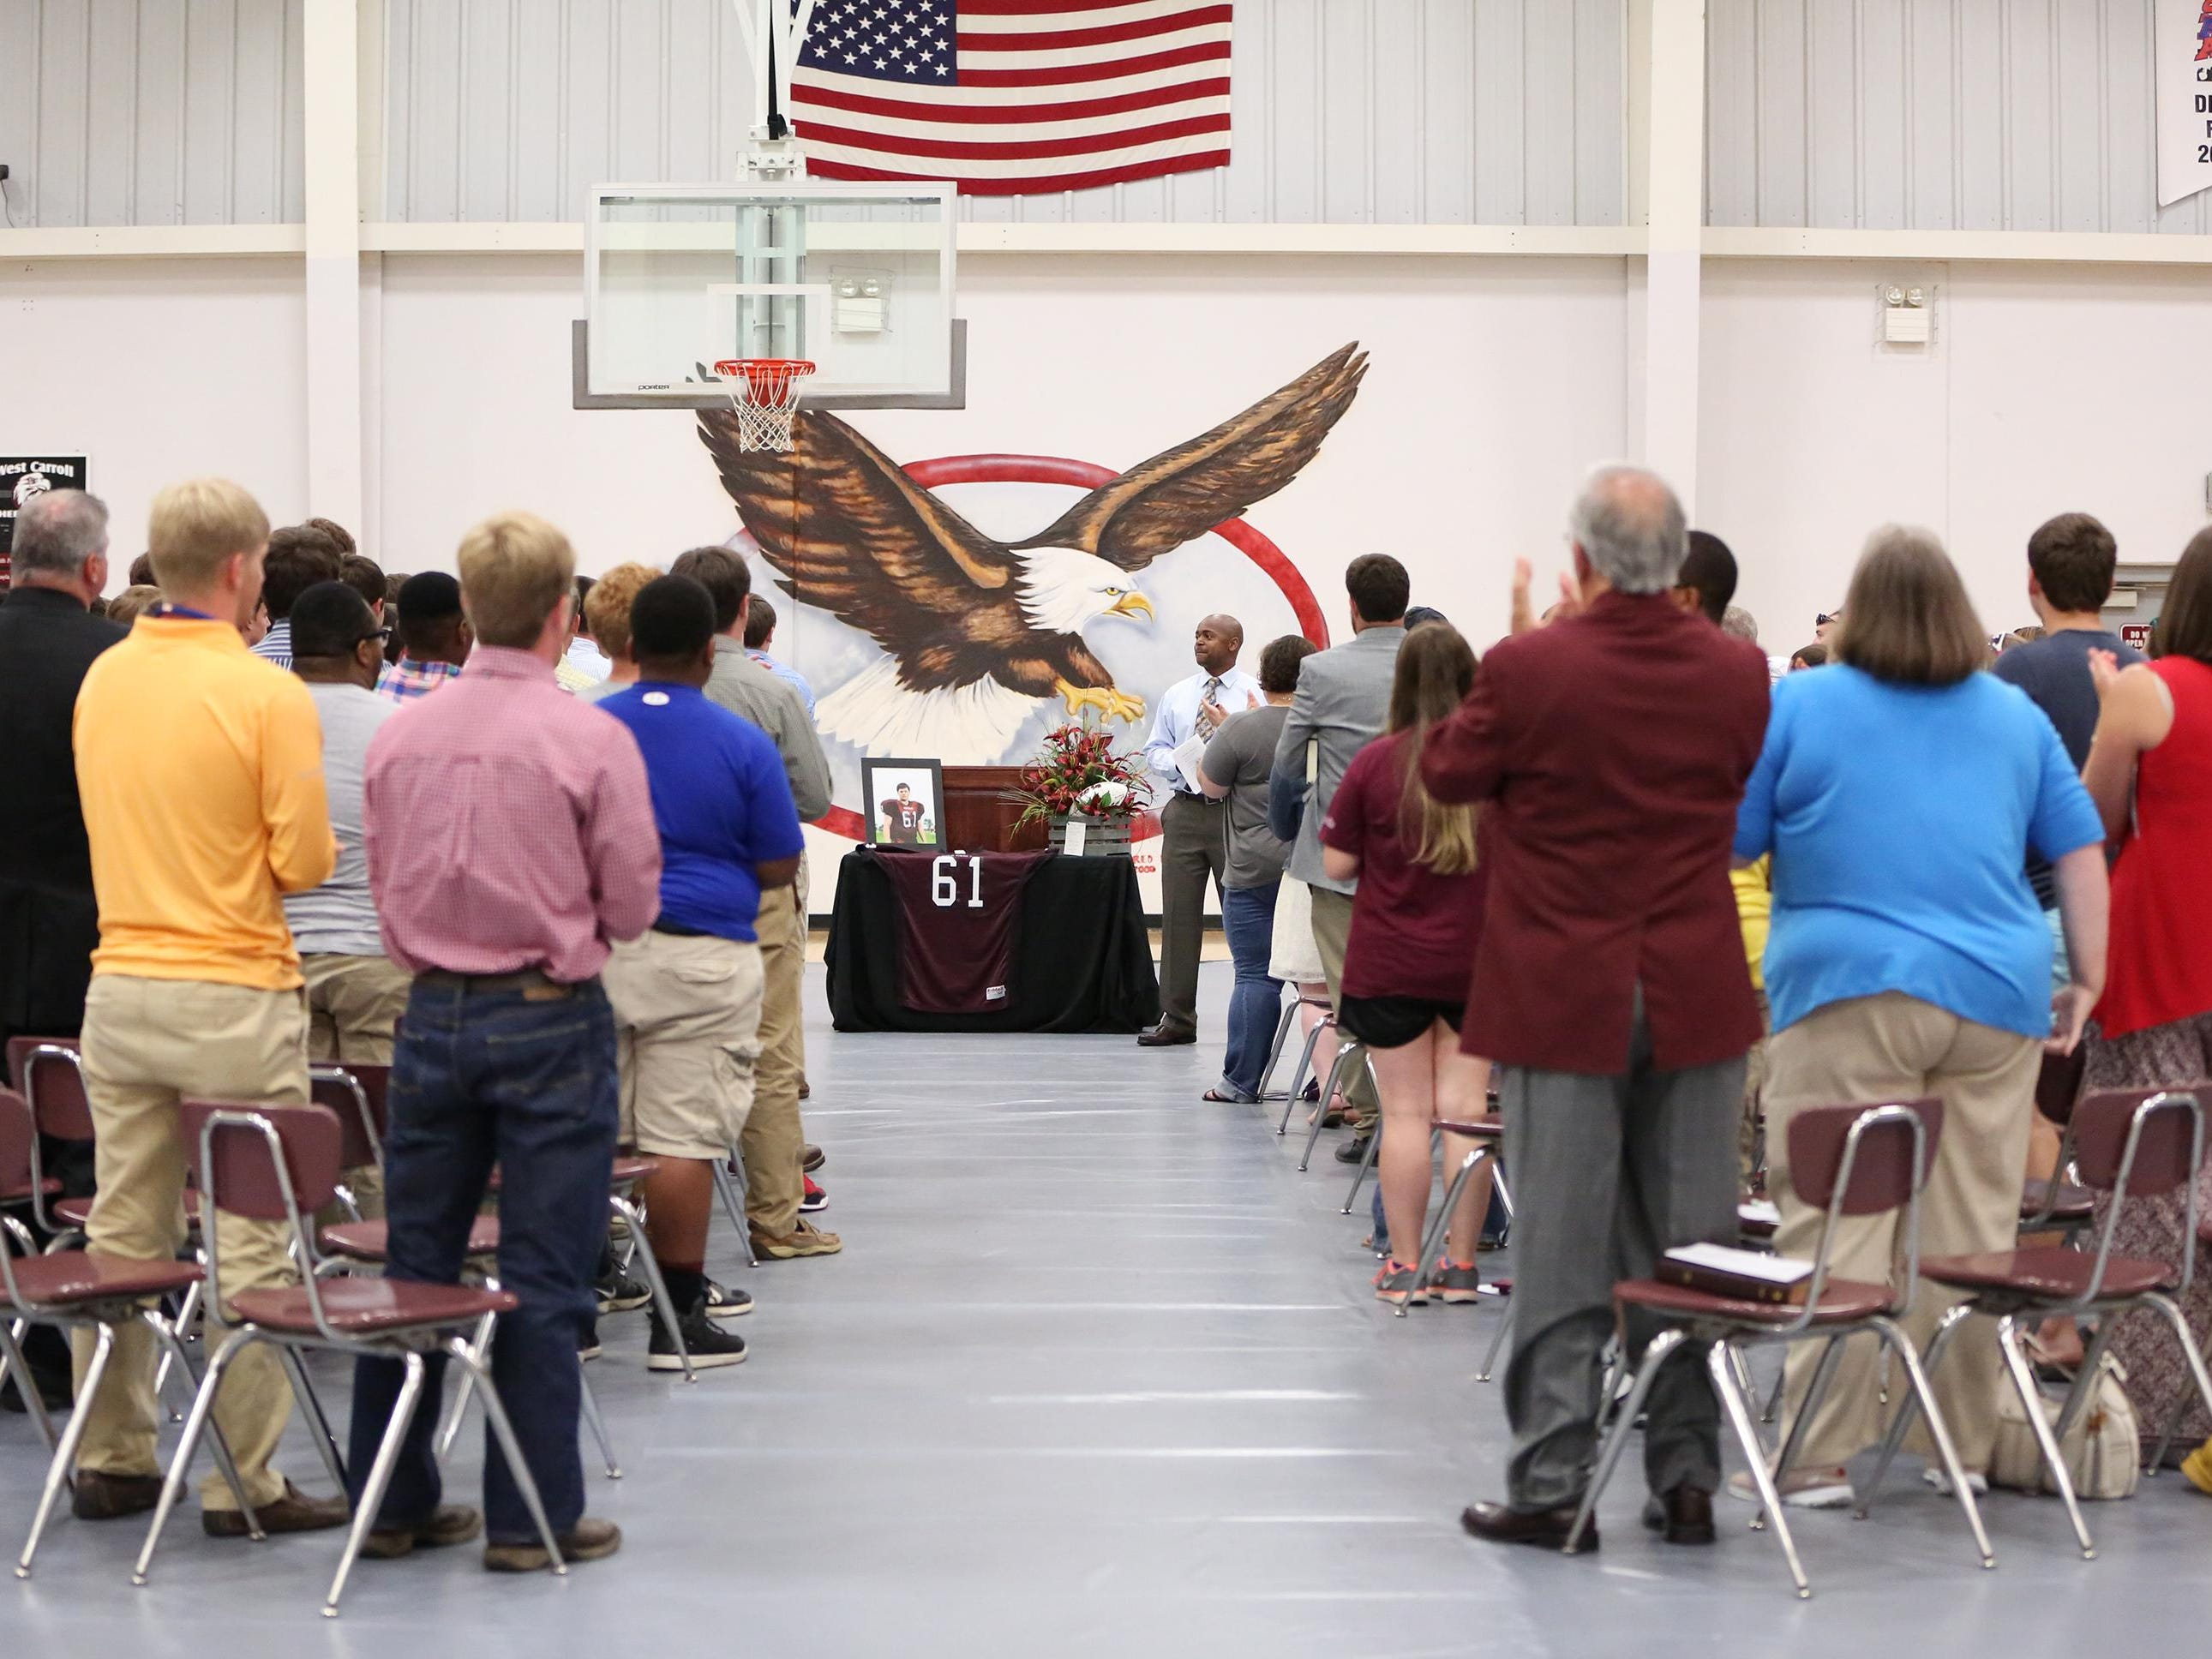 Dexter Williams welcomed everyone to the memorial/celebration service of Austin Blake Ray at West Carroll High School and led them in applause for the celebration of the young man's life.